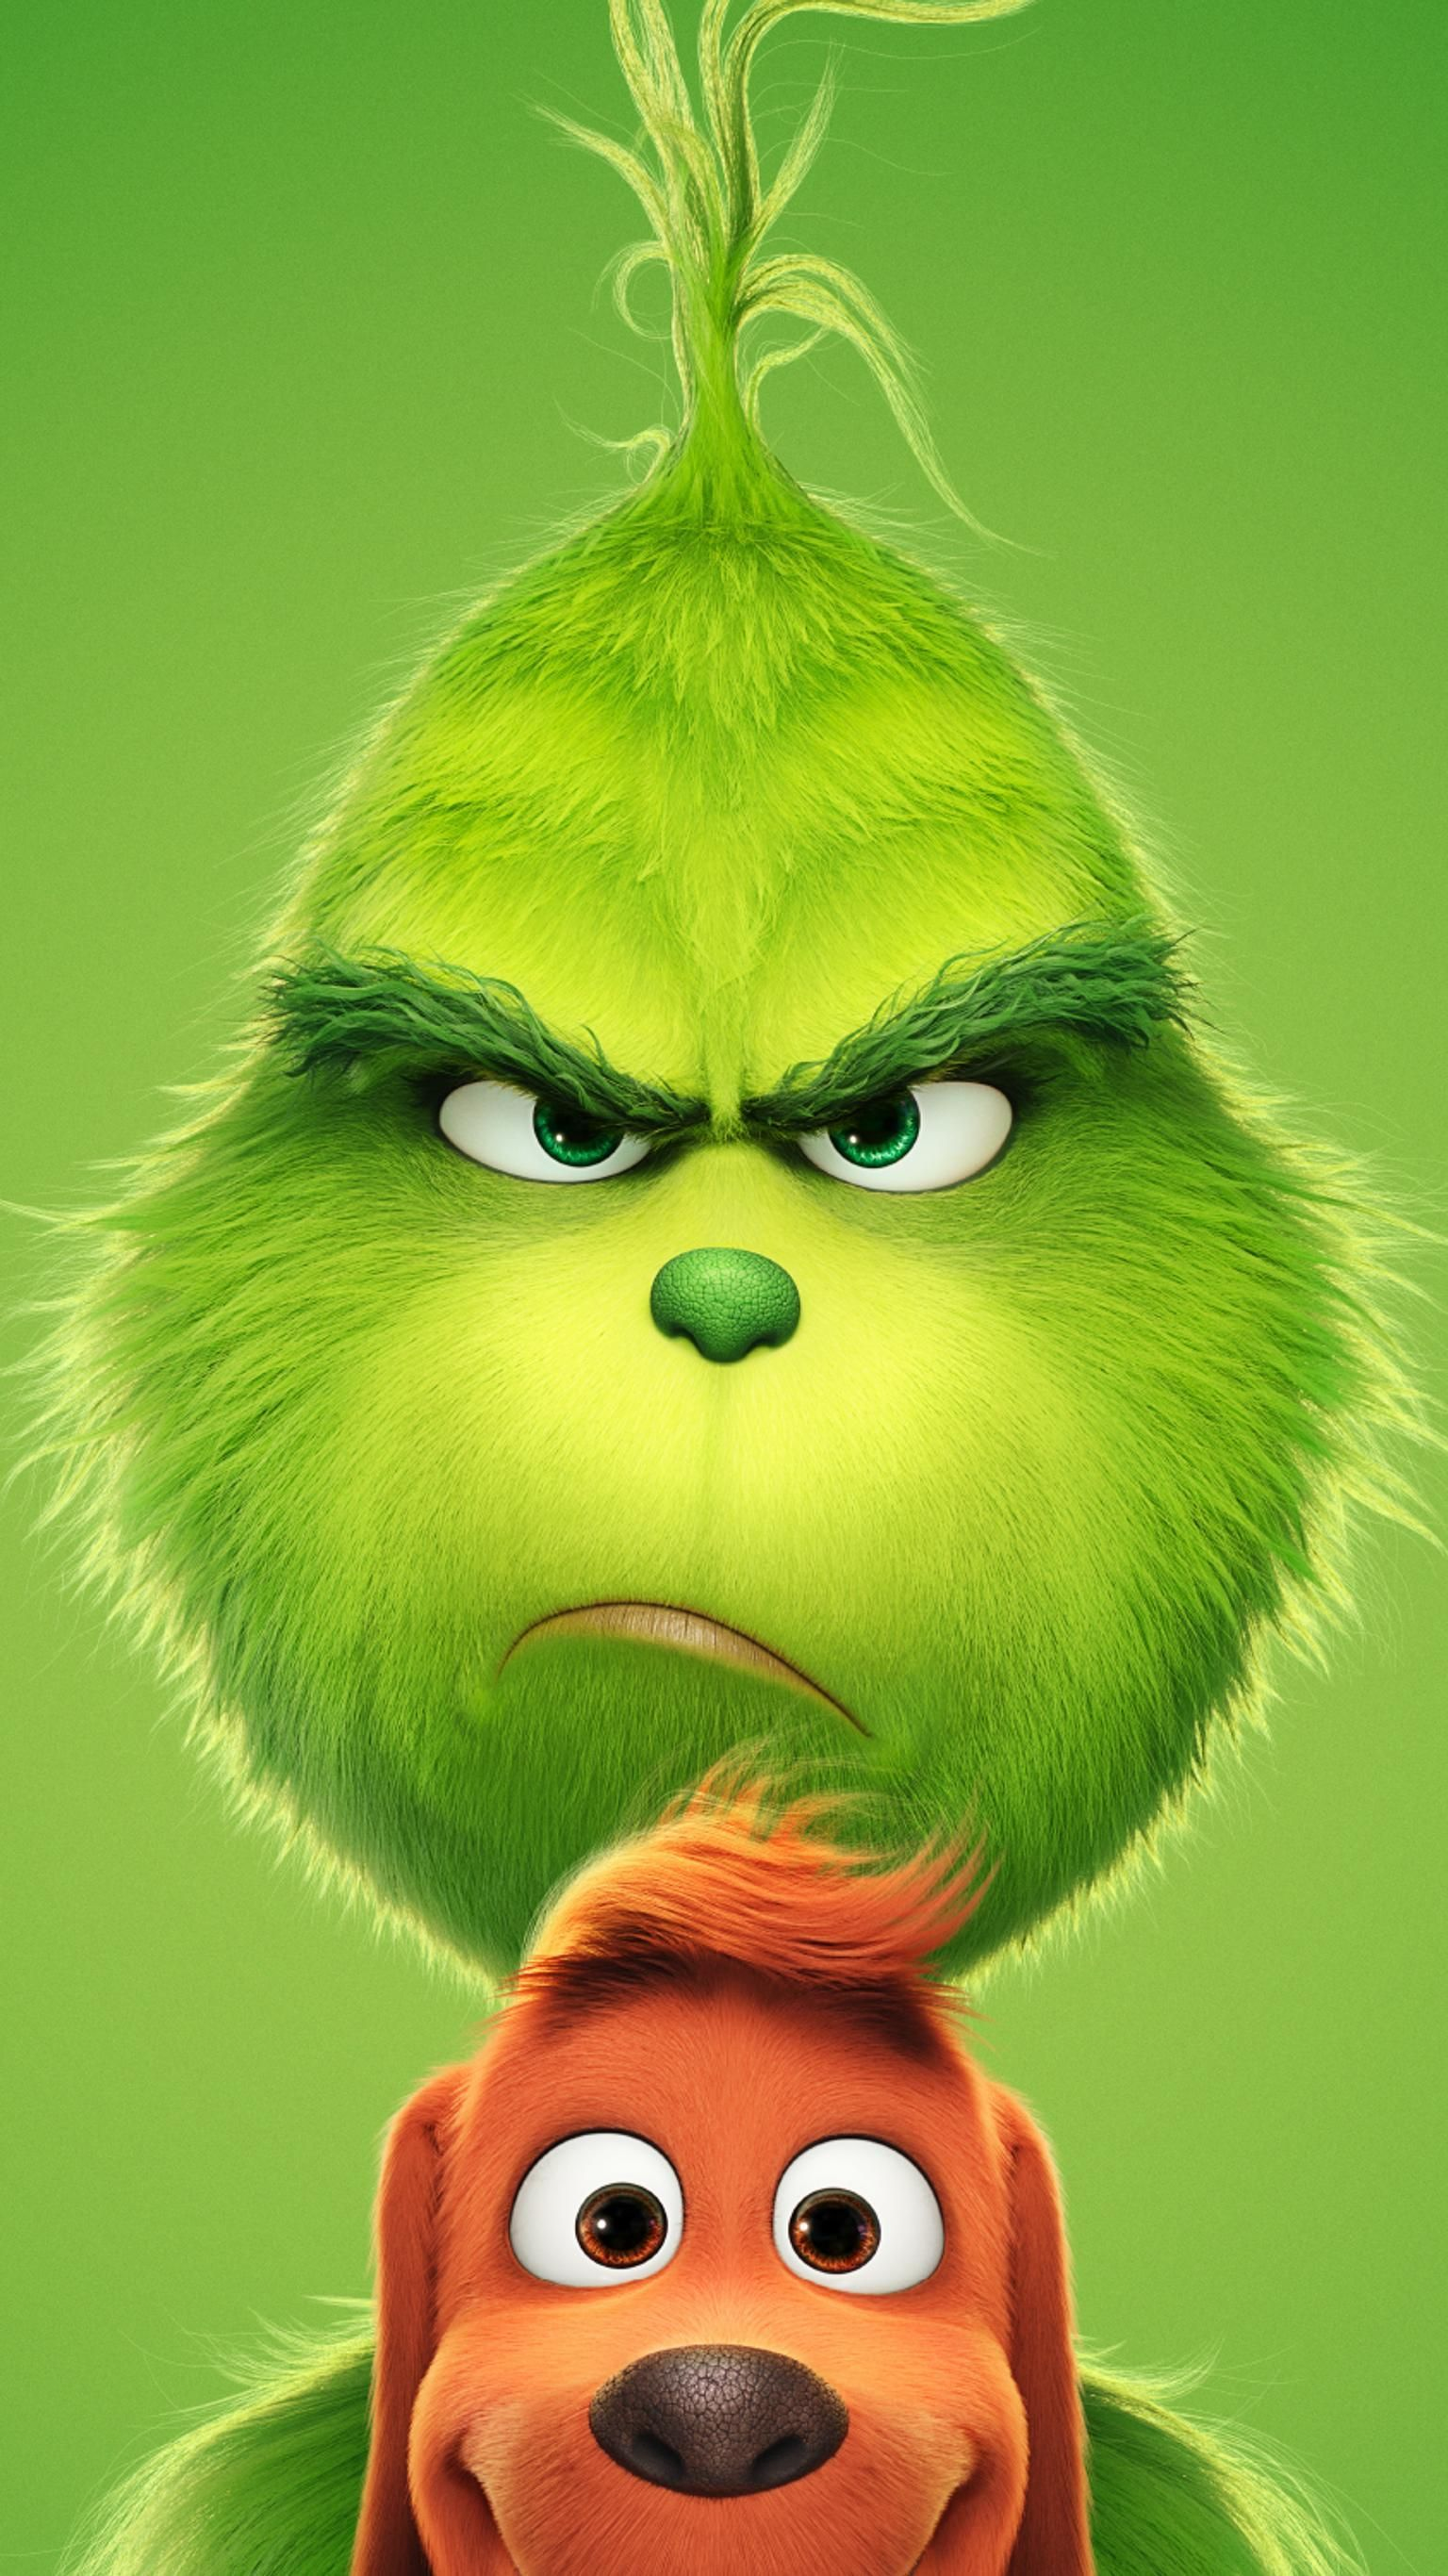 The Grinch 2018 Wallpapers   Top The Grinch 2018 Backgrounds 1536x2732